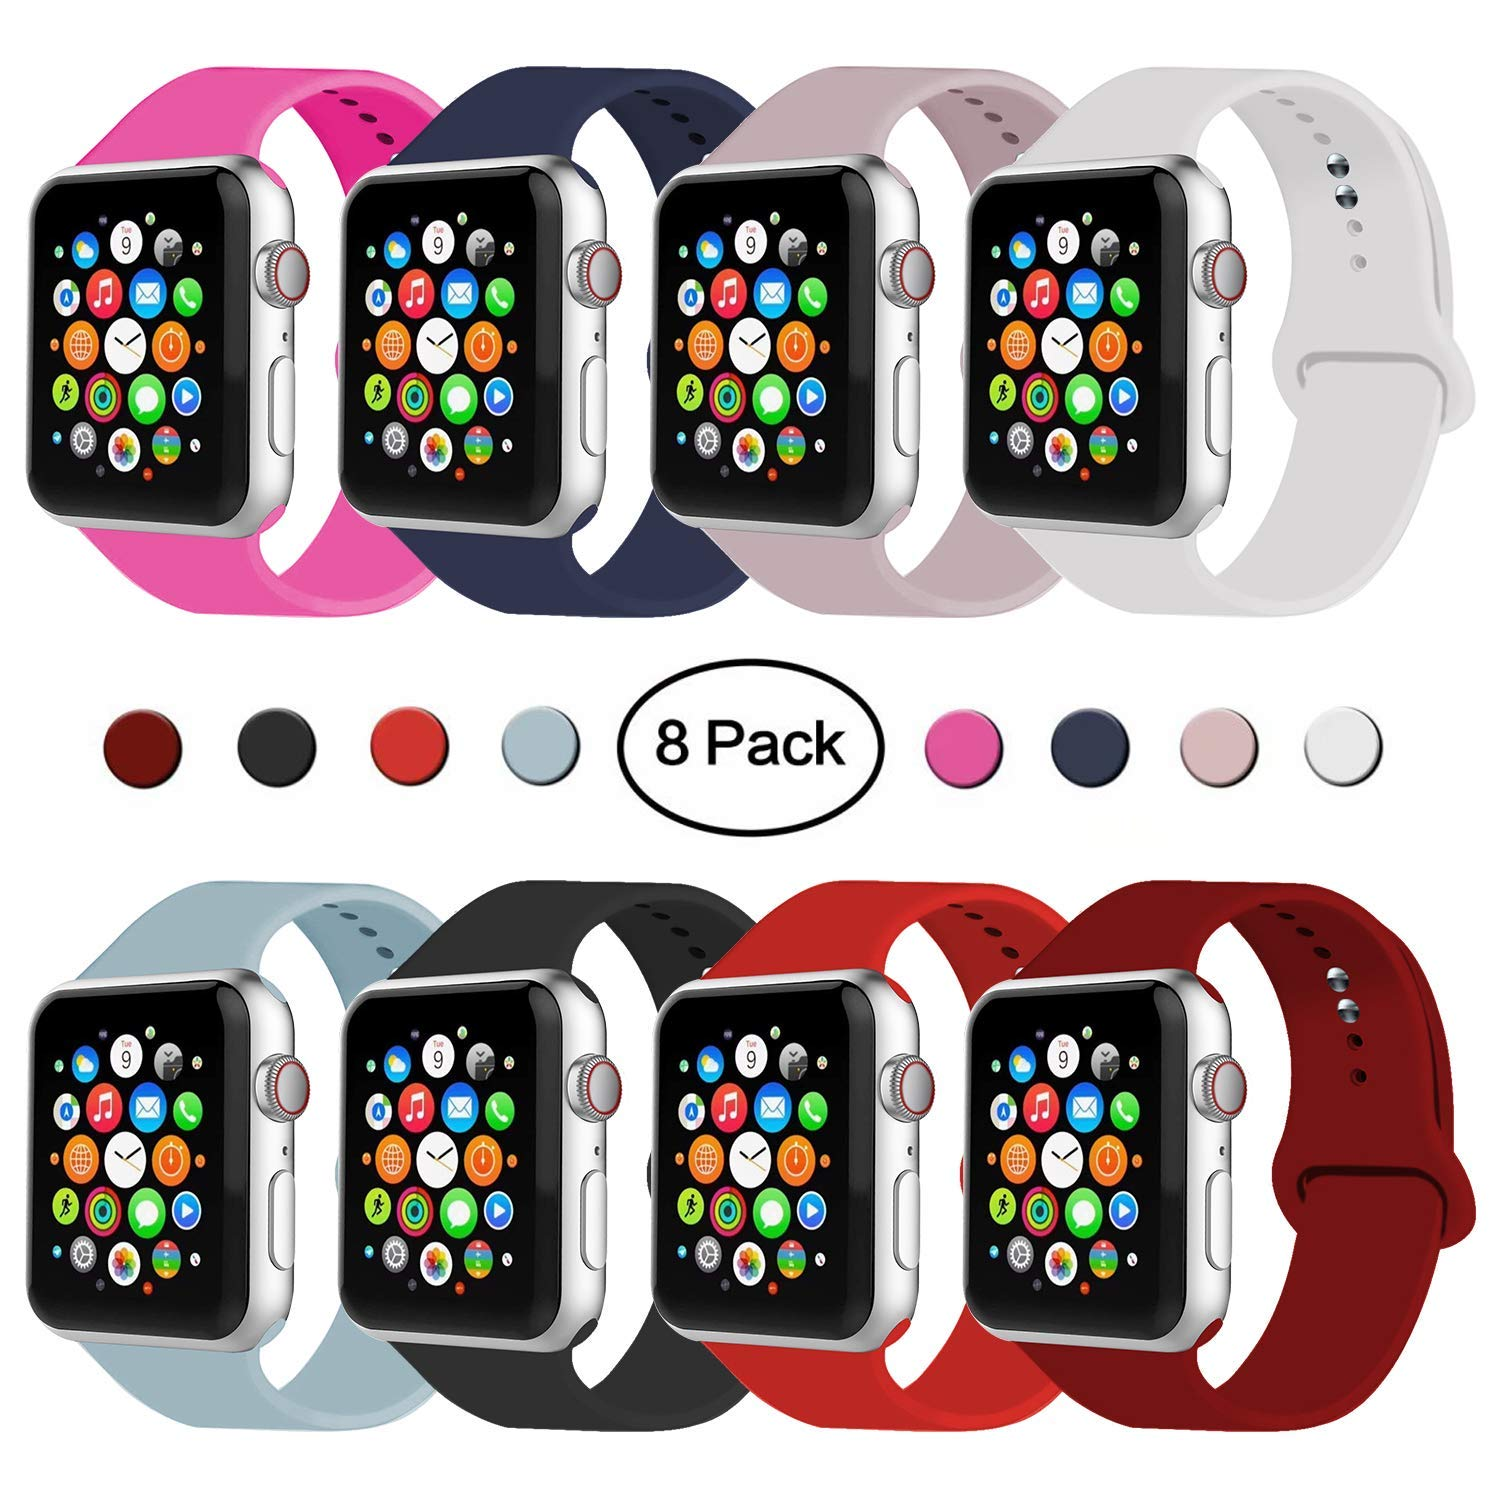 IYOU Sport Band Compatible with Watch Band 38MM 42MM 40MM 44MM, Soft Silicone Replacement Sport Strap Compatible with 2018 Watch Series 4/3/2/1 (8 Pack,38MM, S/M) by IYOU